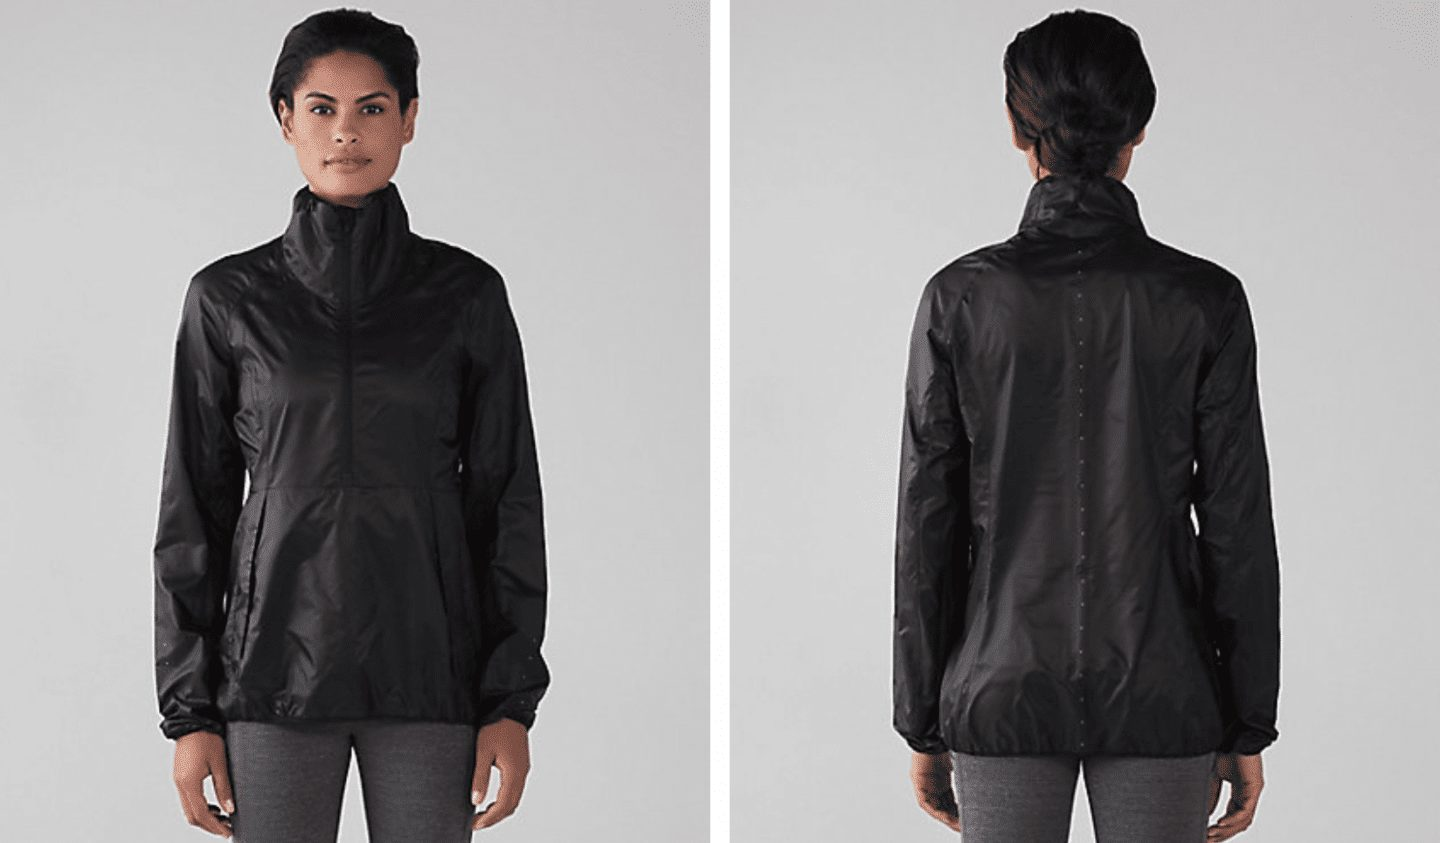 Run With It Jacket